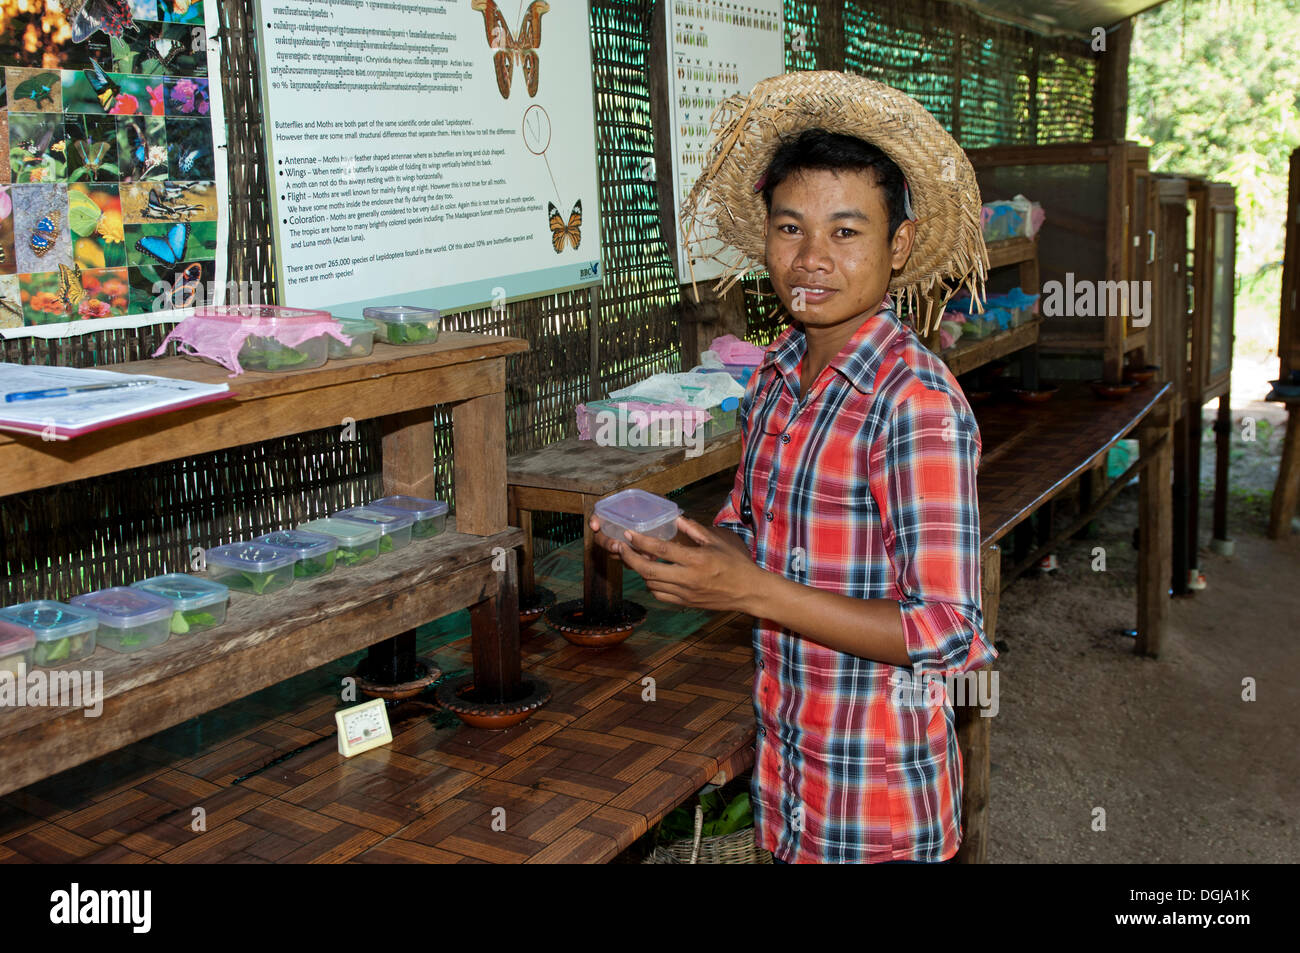 Lepidopterist with plastic boxes for breeding caterpillars in Banteay Srey Butterfly Centre BBC, Siem Reap, Cambodia - Stock Image